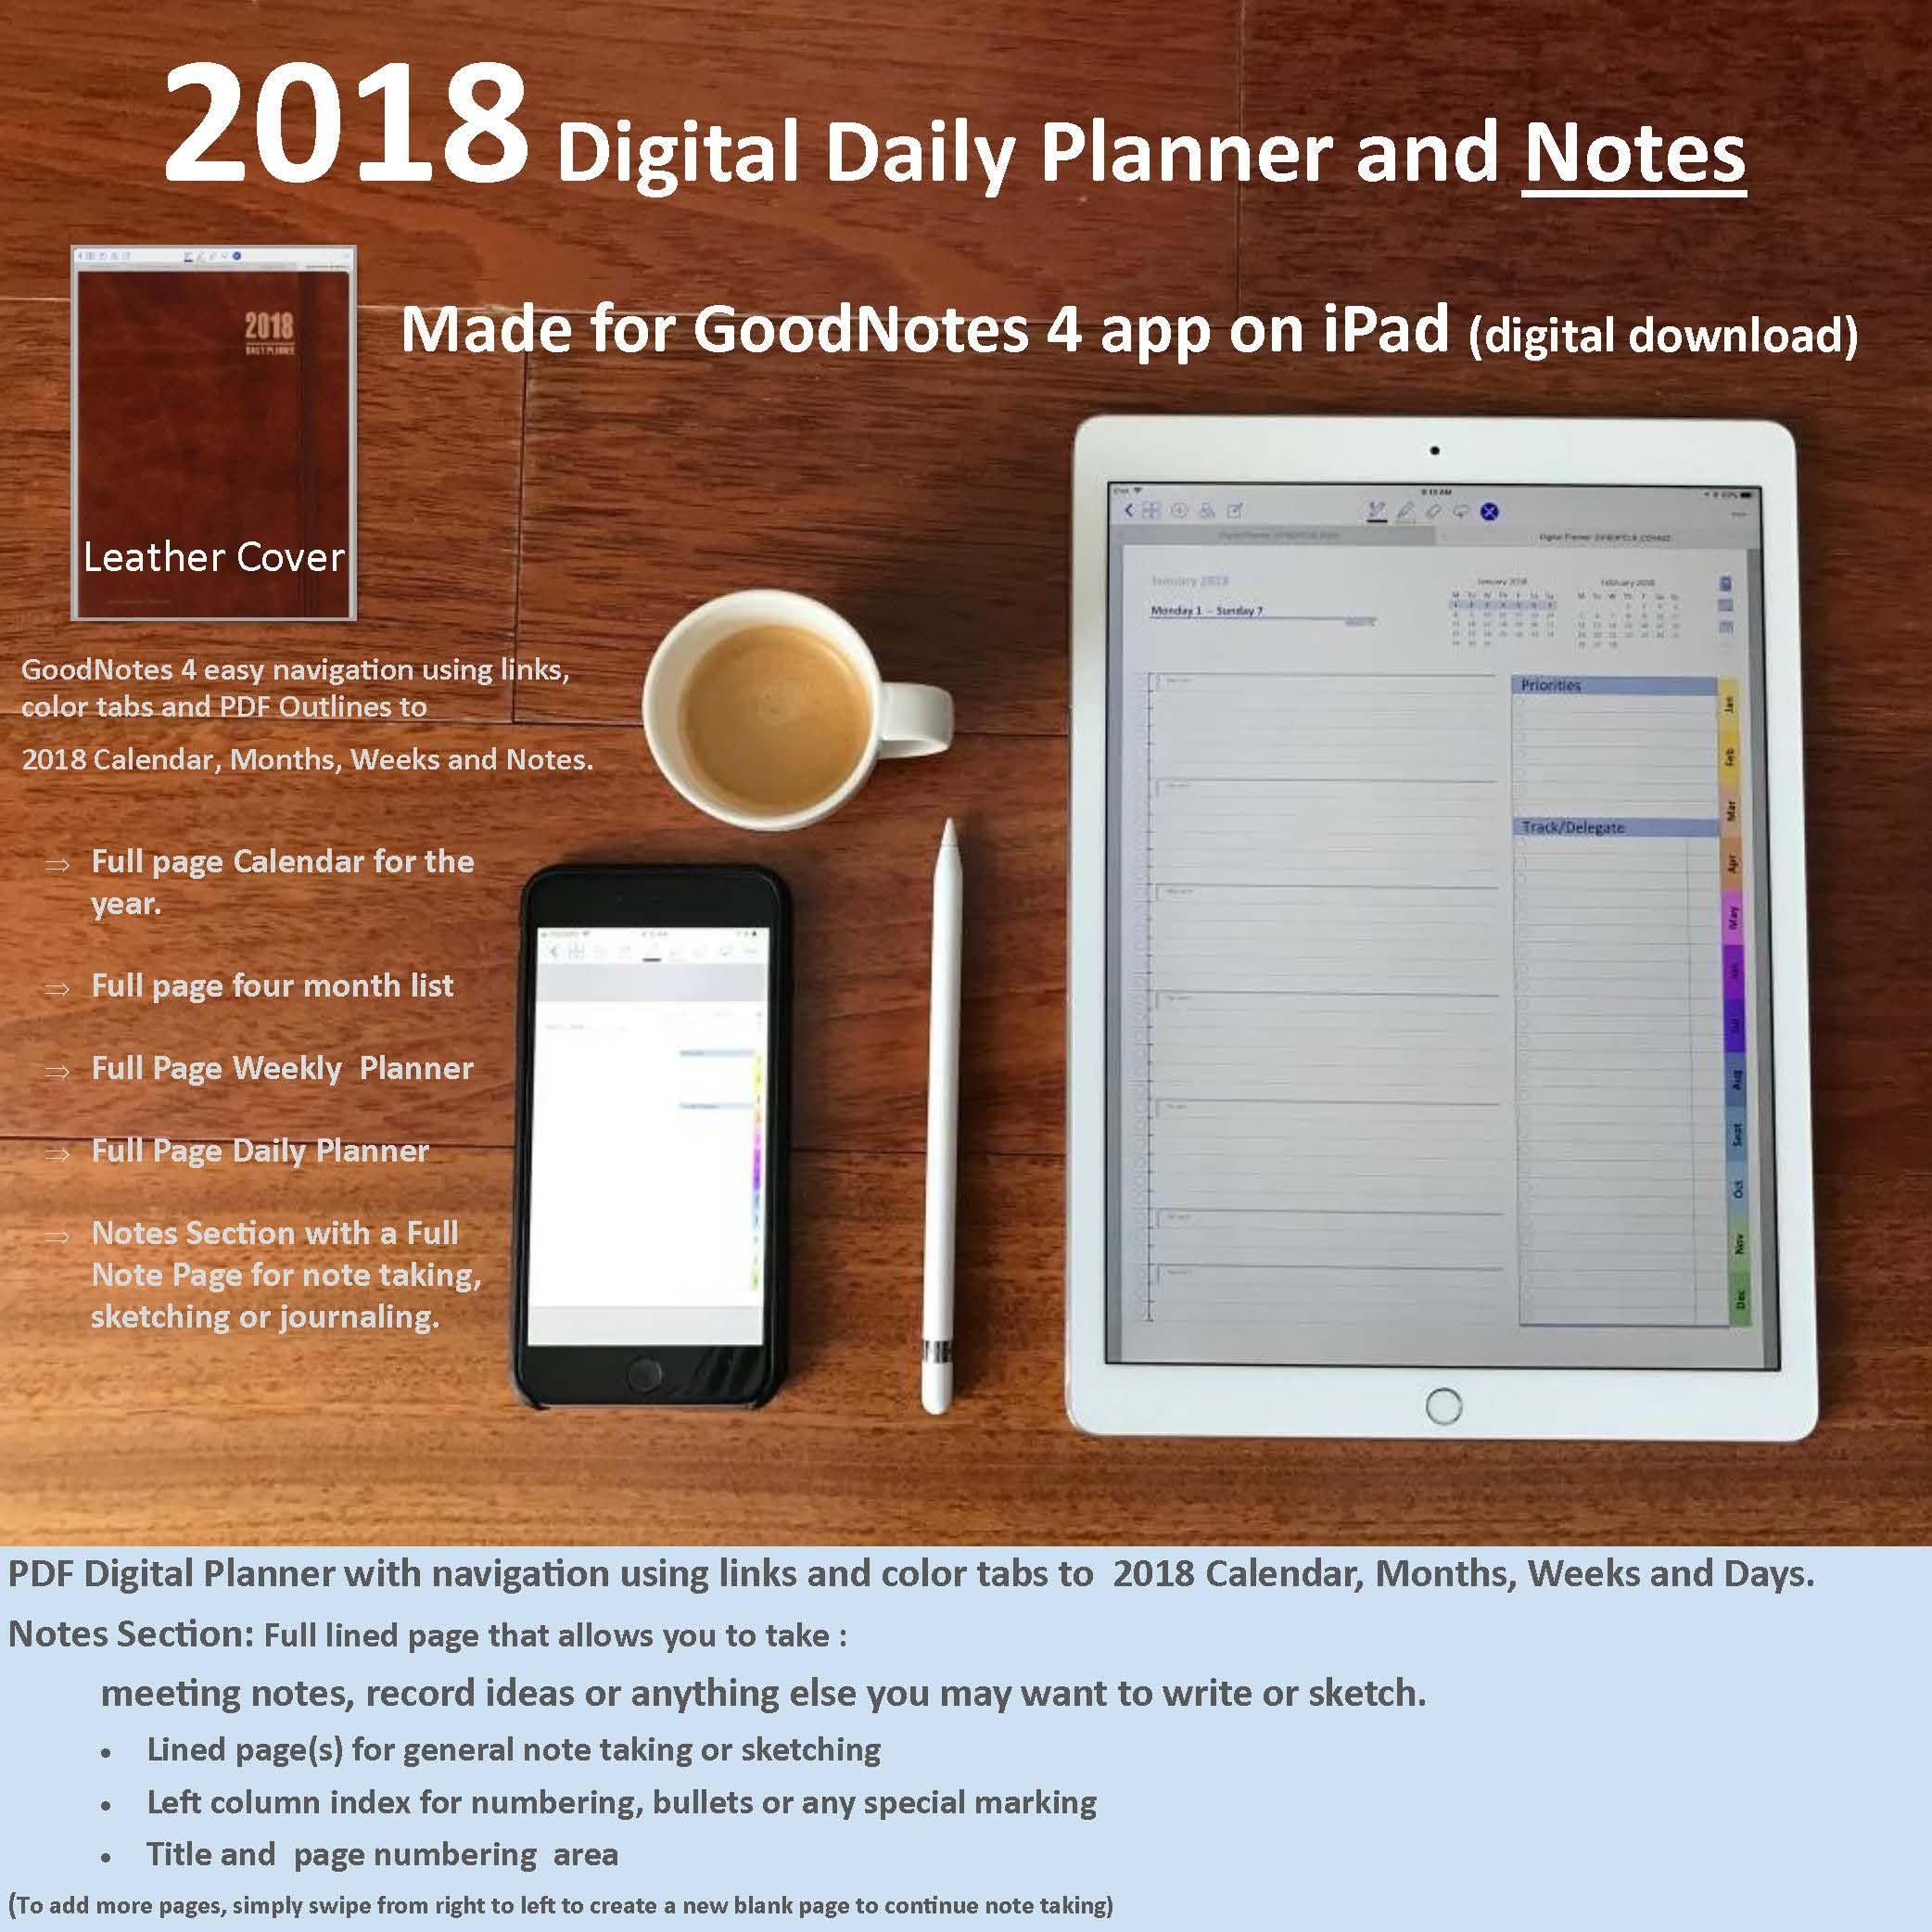 2018 Digital Planner and Journal for GoodNotes 4 app on iPad